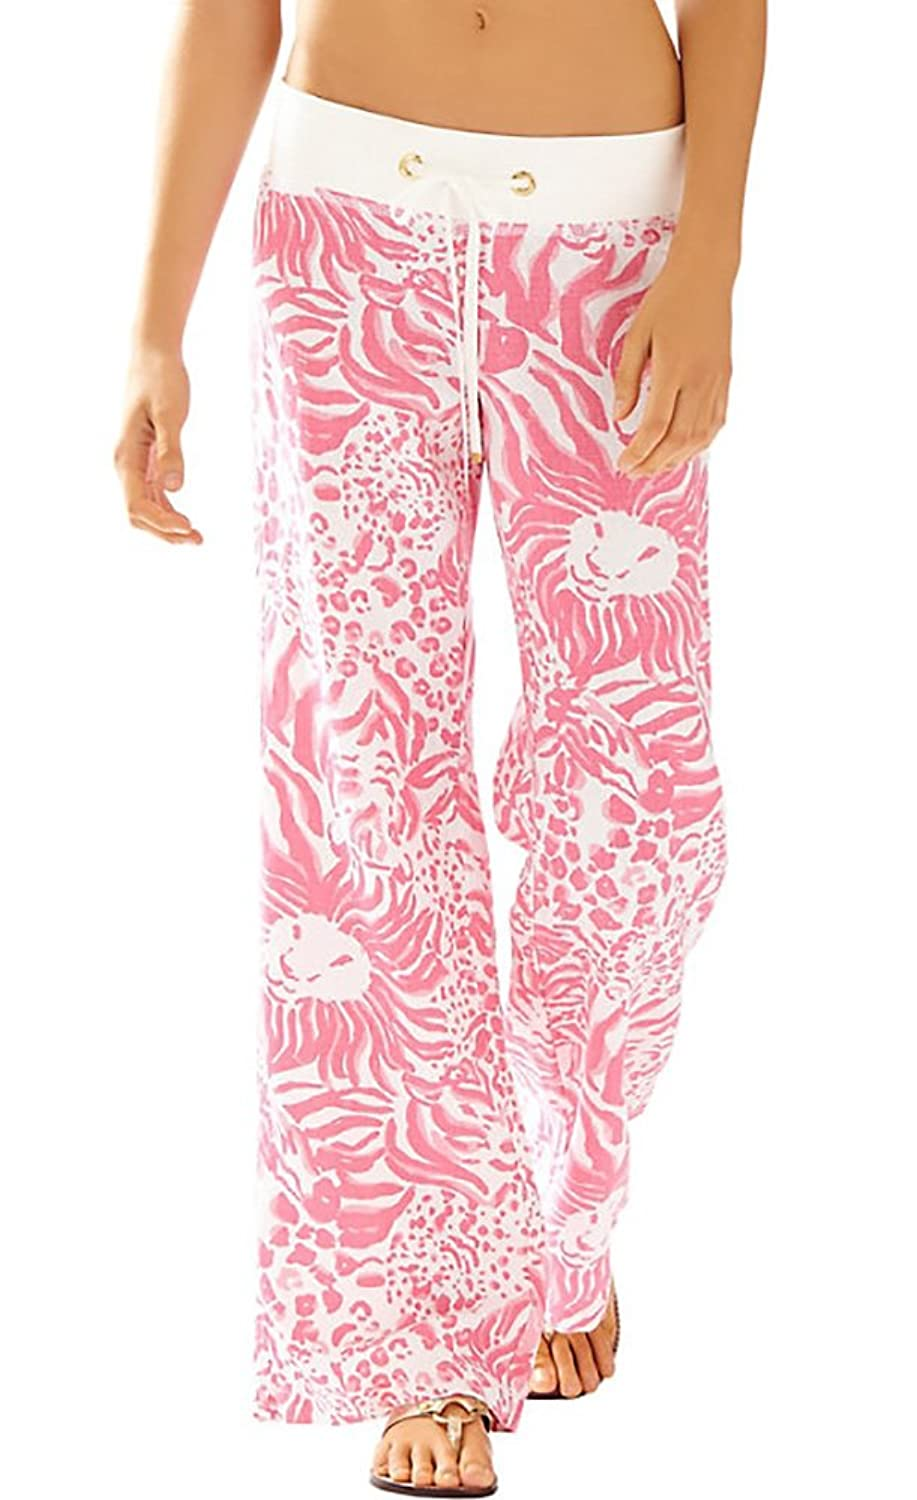 967a9e2849 Lilly Pulitzer Women's Linen Beach Pant, Resort White Get Spotted,XXS 30%OFF